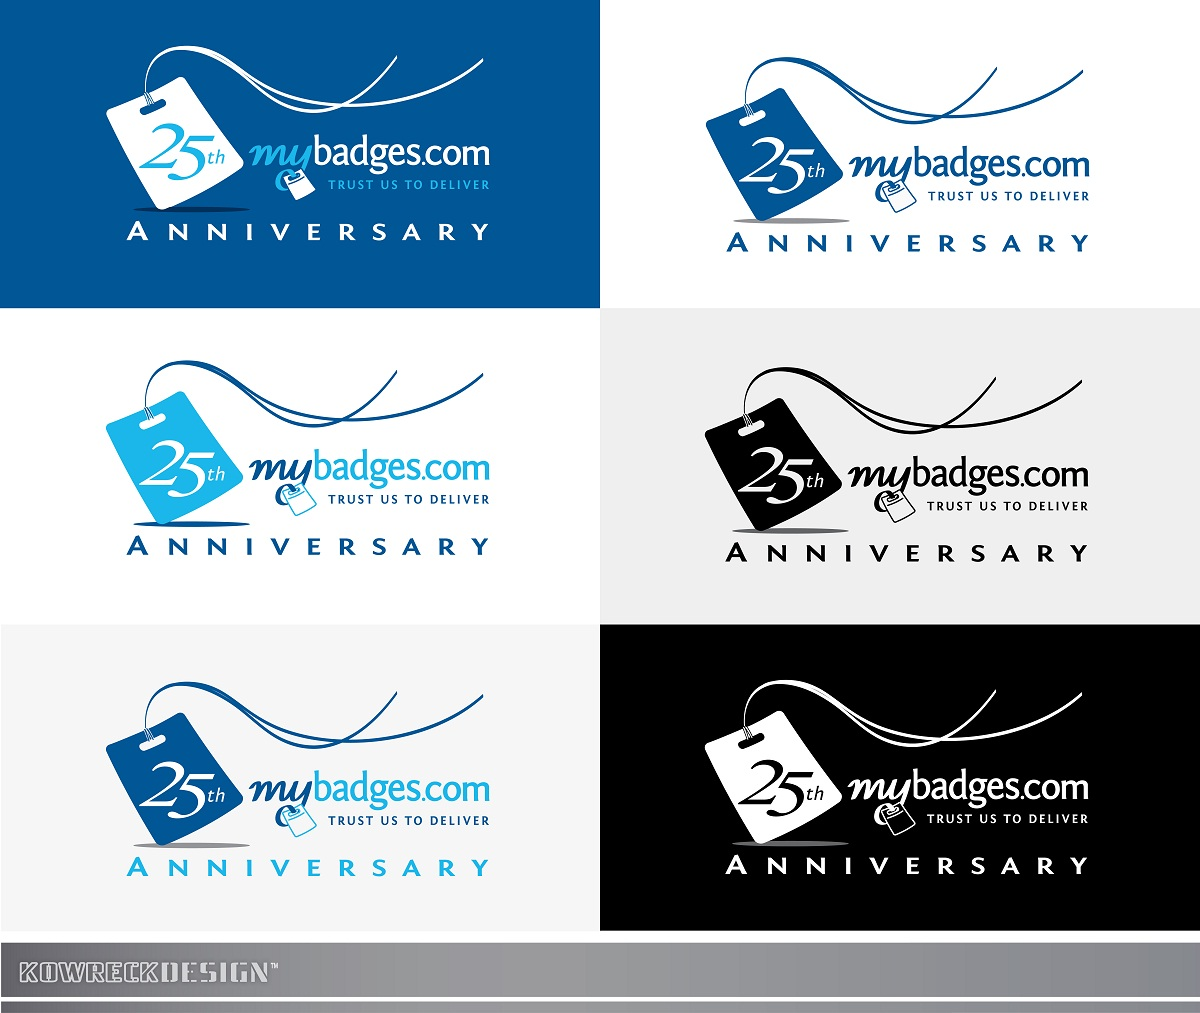 Logo Design Contests » 25th Anniversary Logo Design Wanted for ...